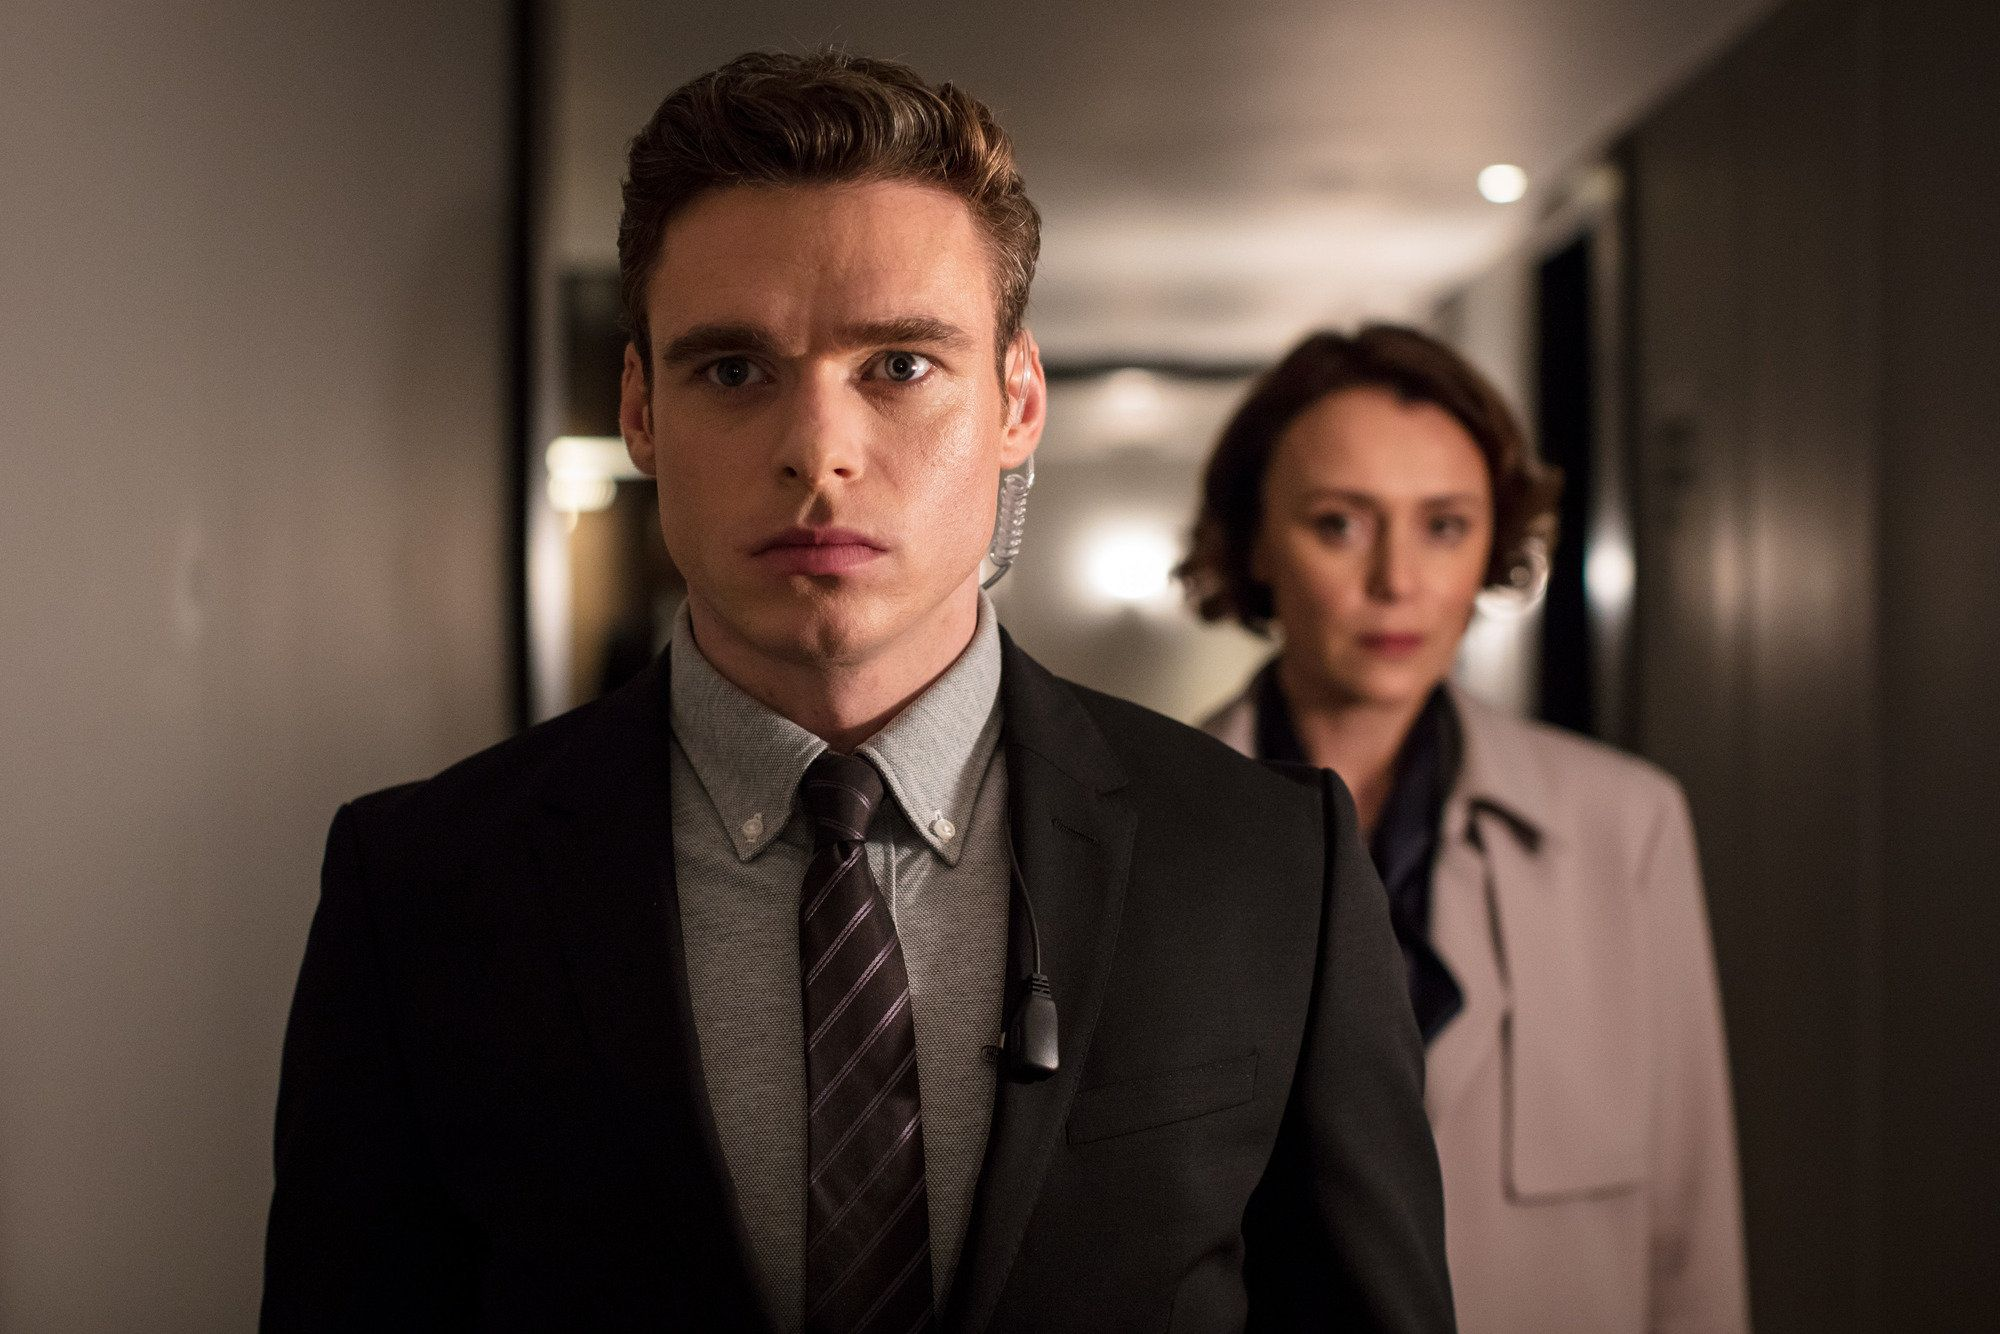 'Bodyguard' Creator Explains Why He Killed Off Main Character In Unexpected Plot Twist (*SPOILER*)